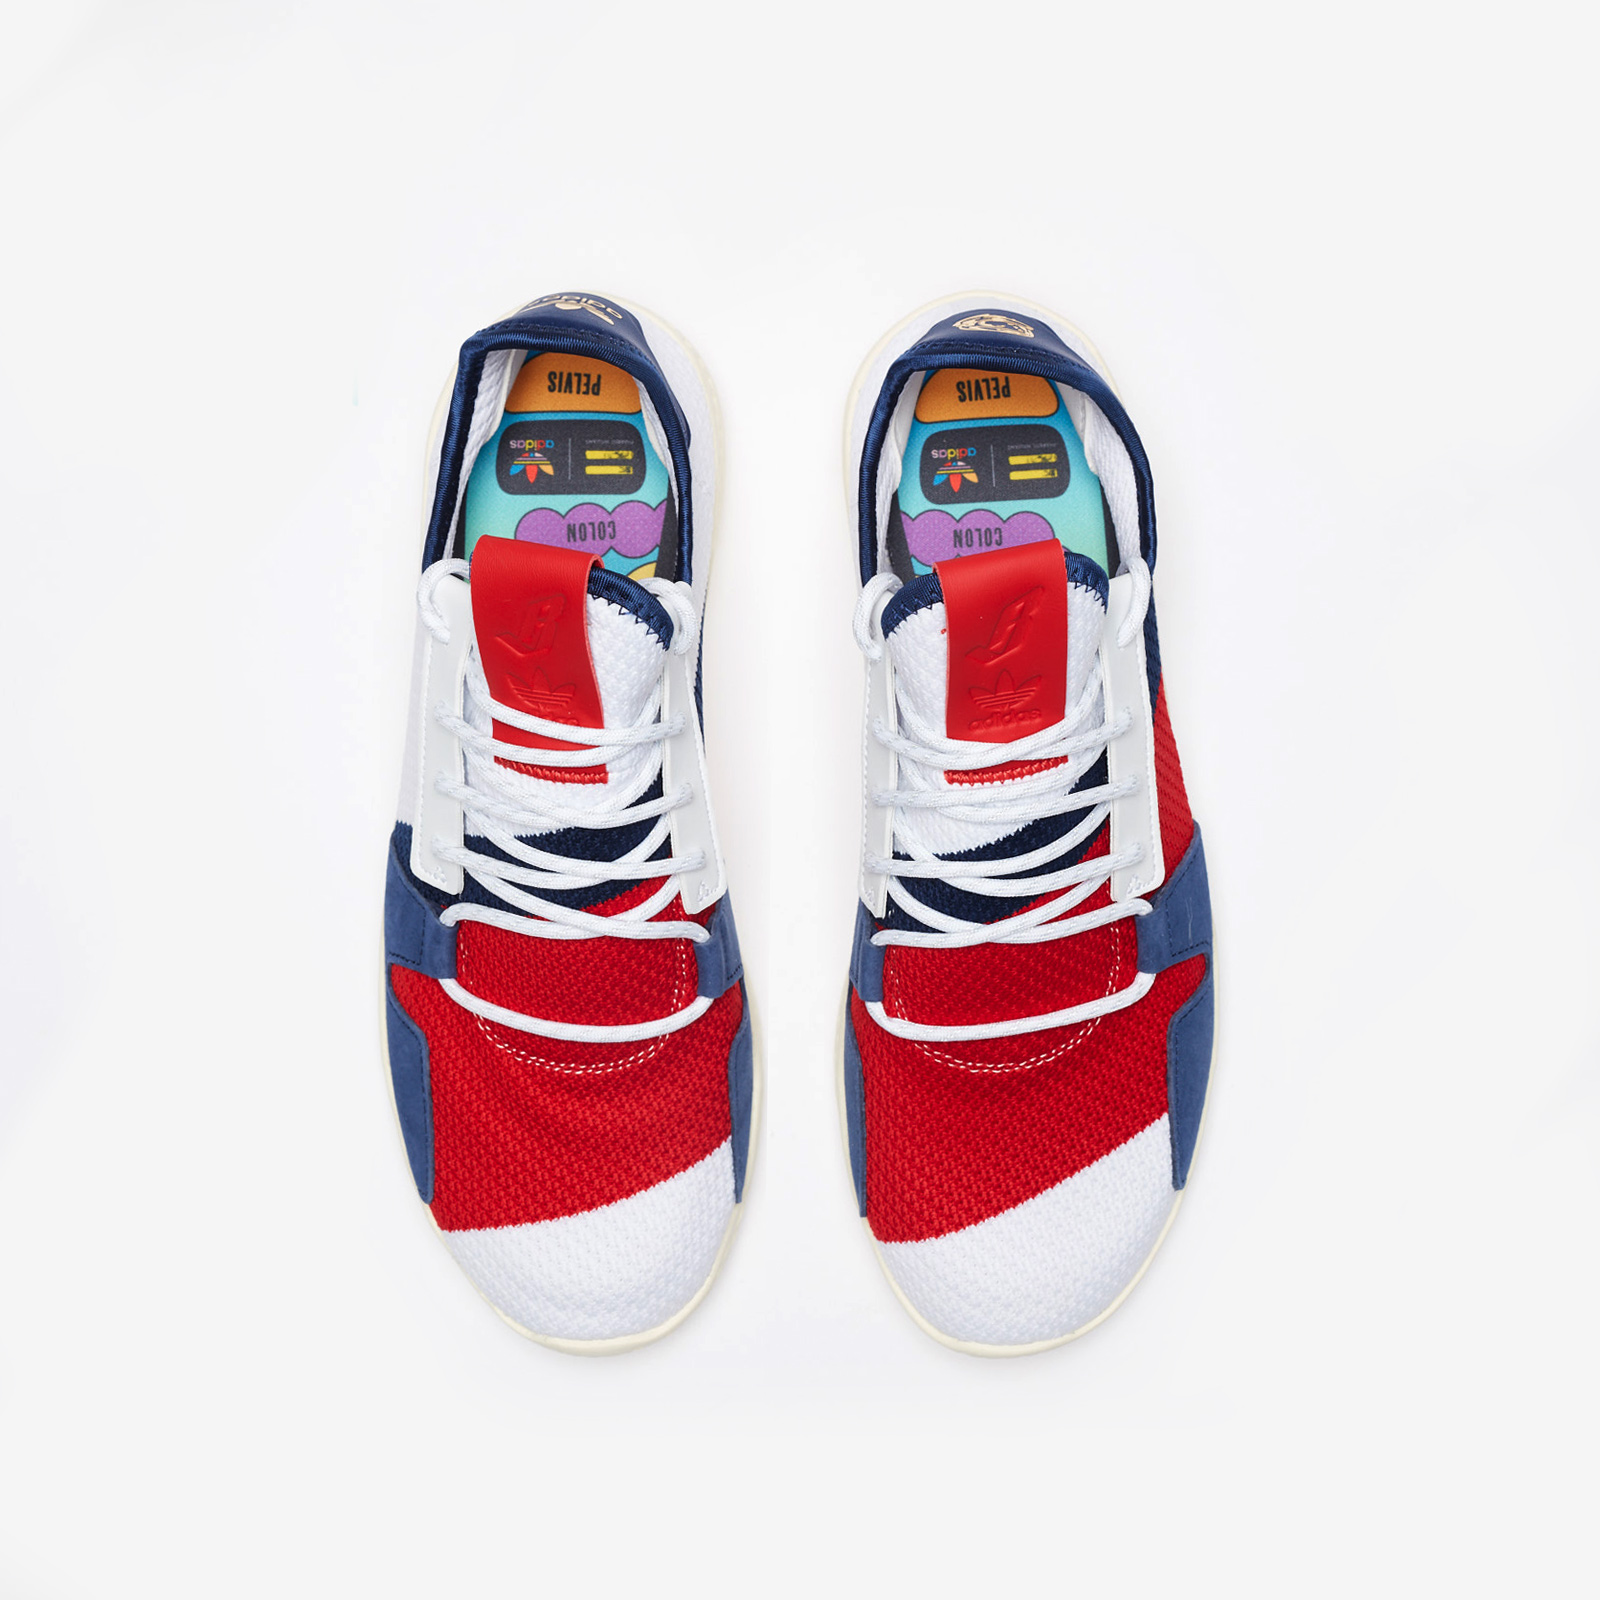 926fee2d3 adidas Tennis Hu x BBC - Bb9549 - Sneakersnstuff